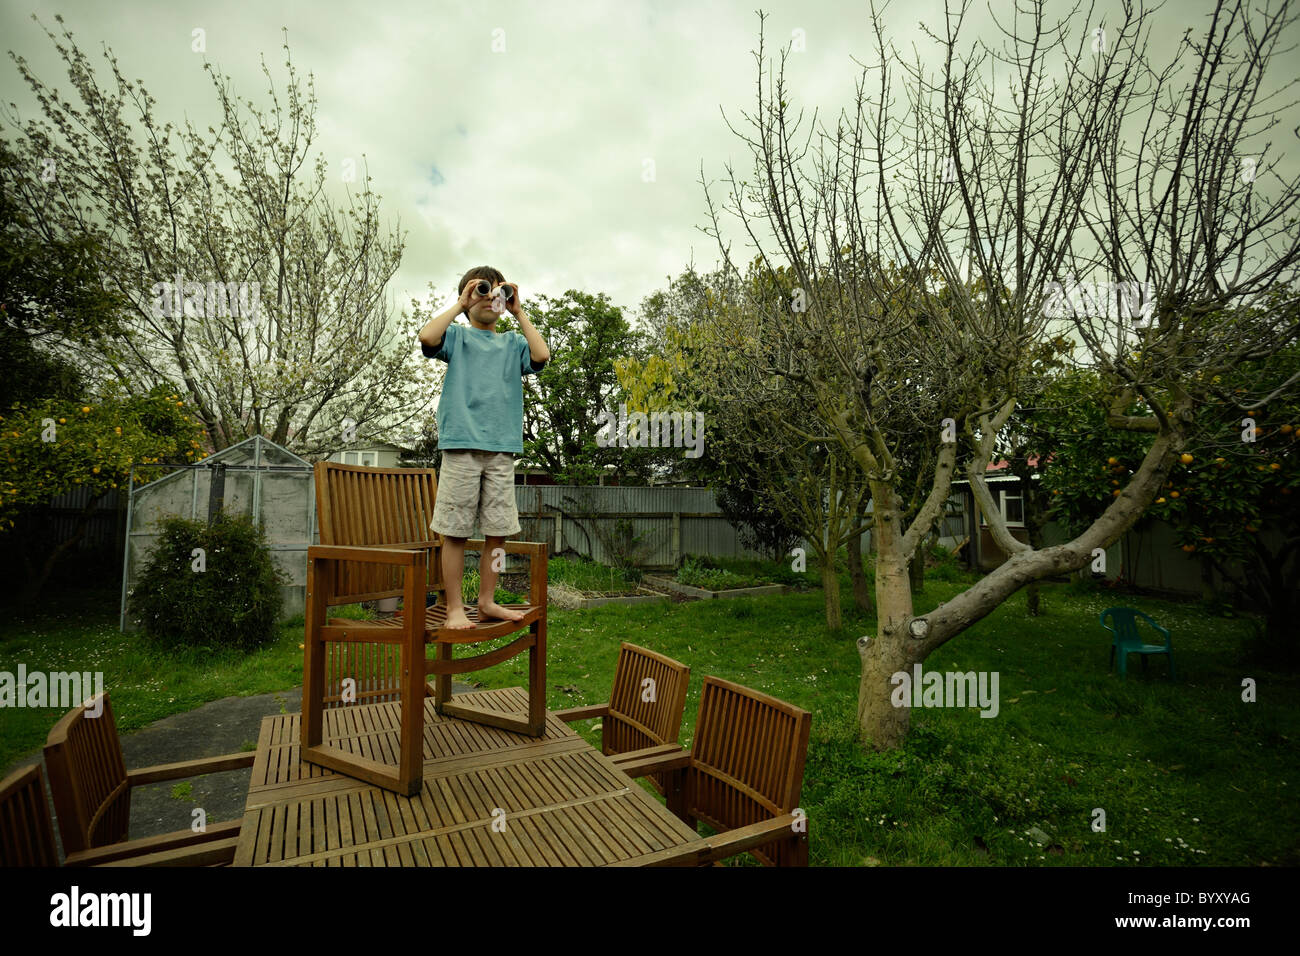 Boy stand on chair on garden table, using cardboard tubes as pretend binoculars. - Stock Image